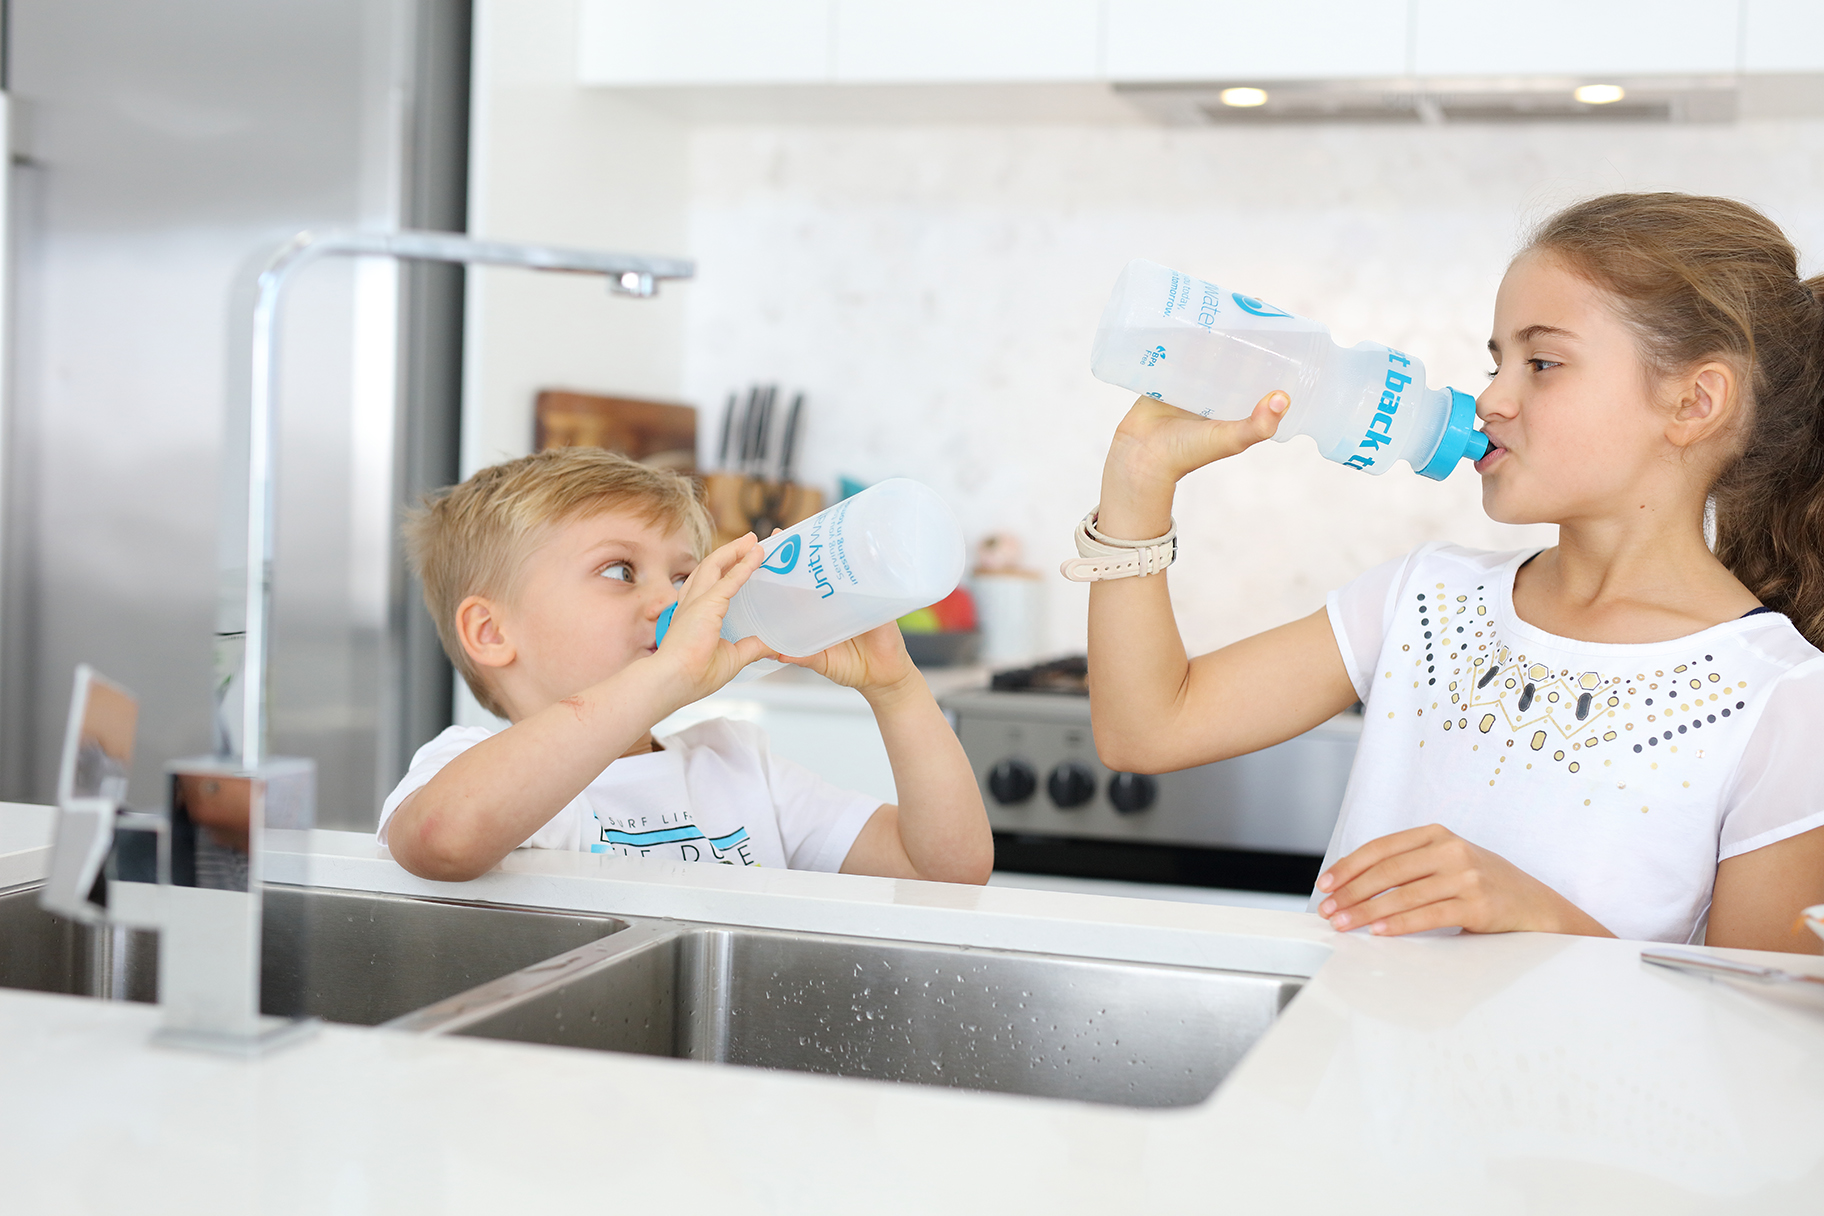 Children drinking from water bottles at kitchen sink